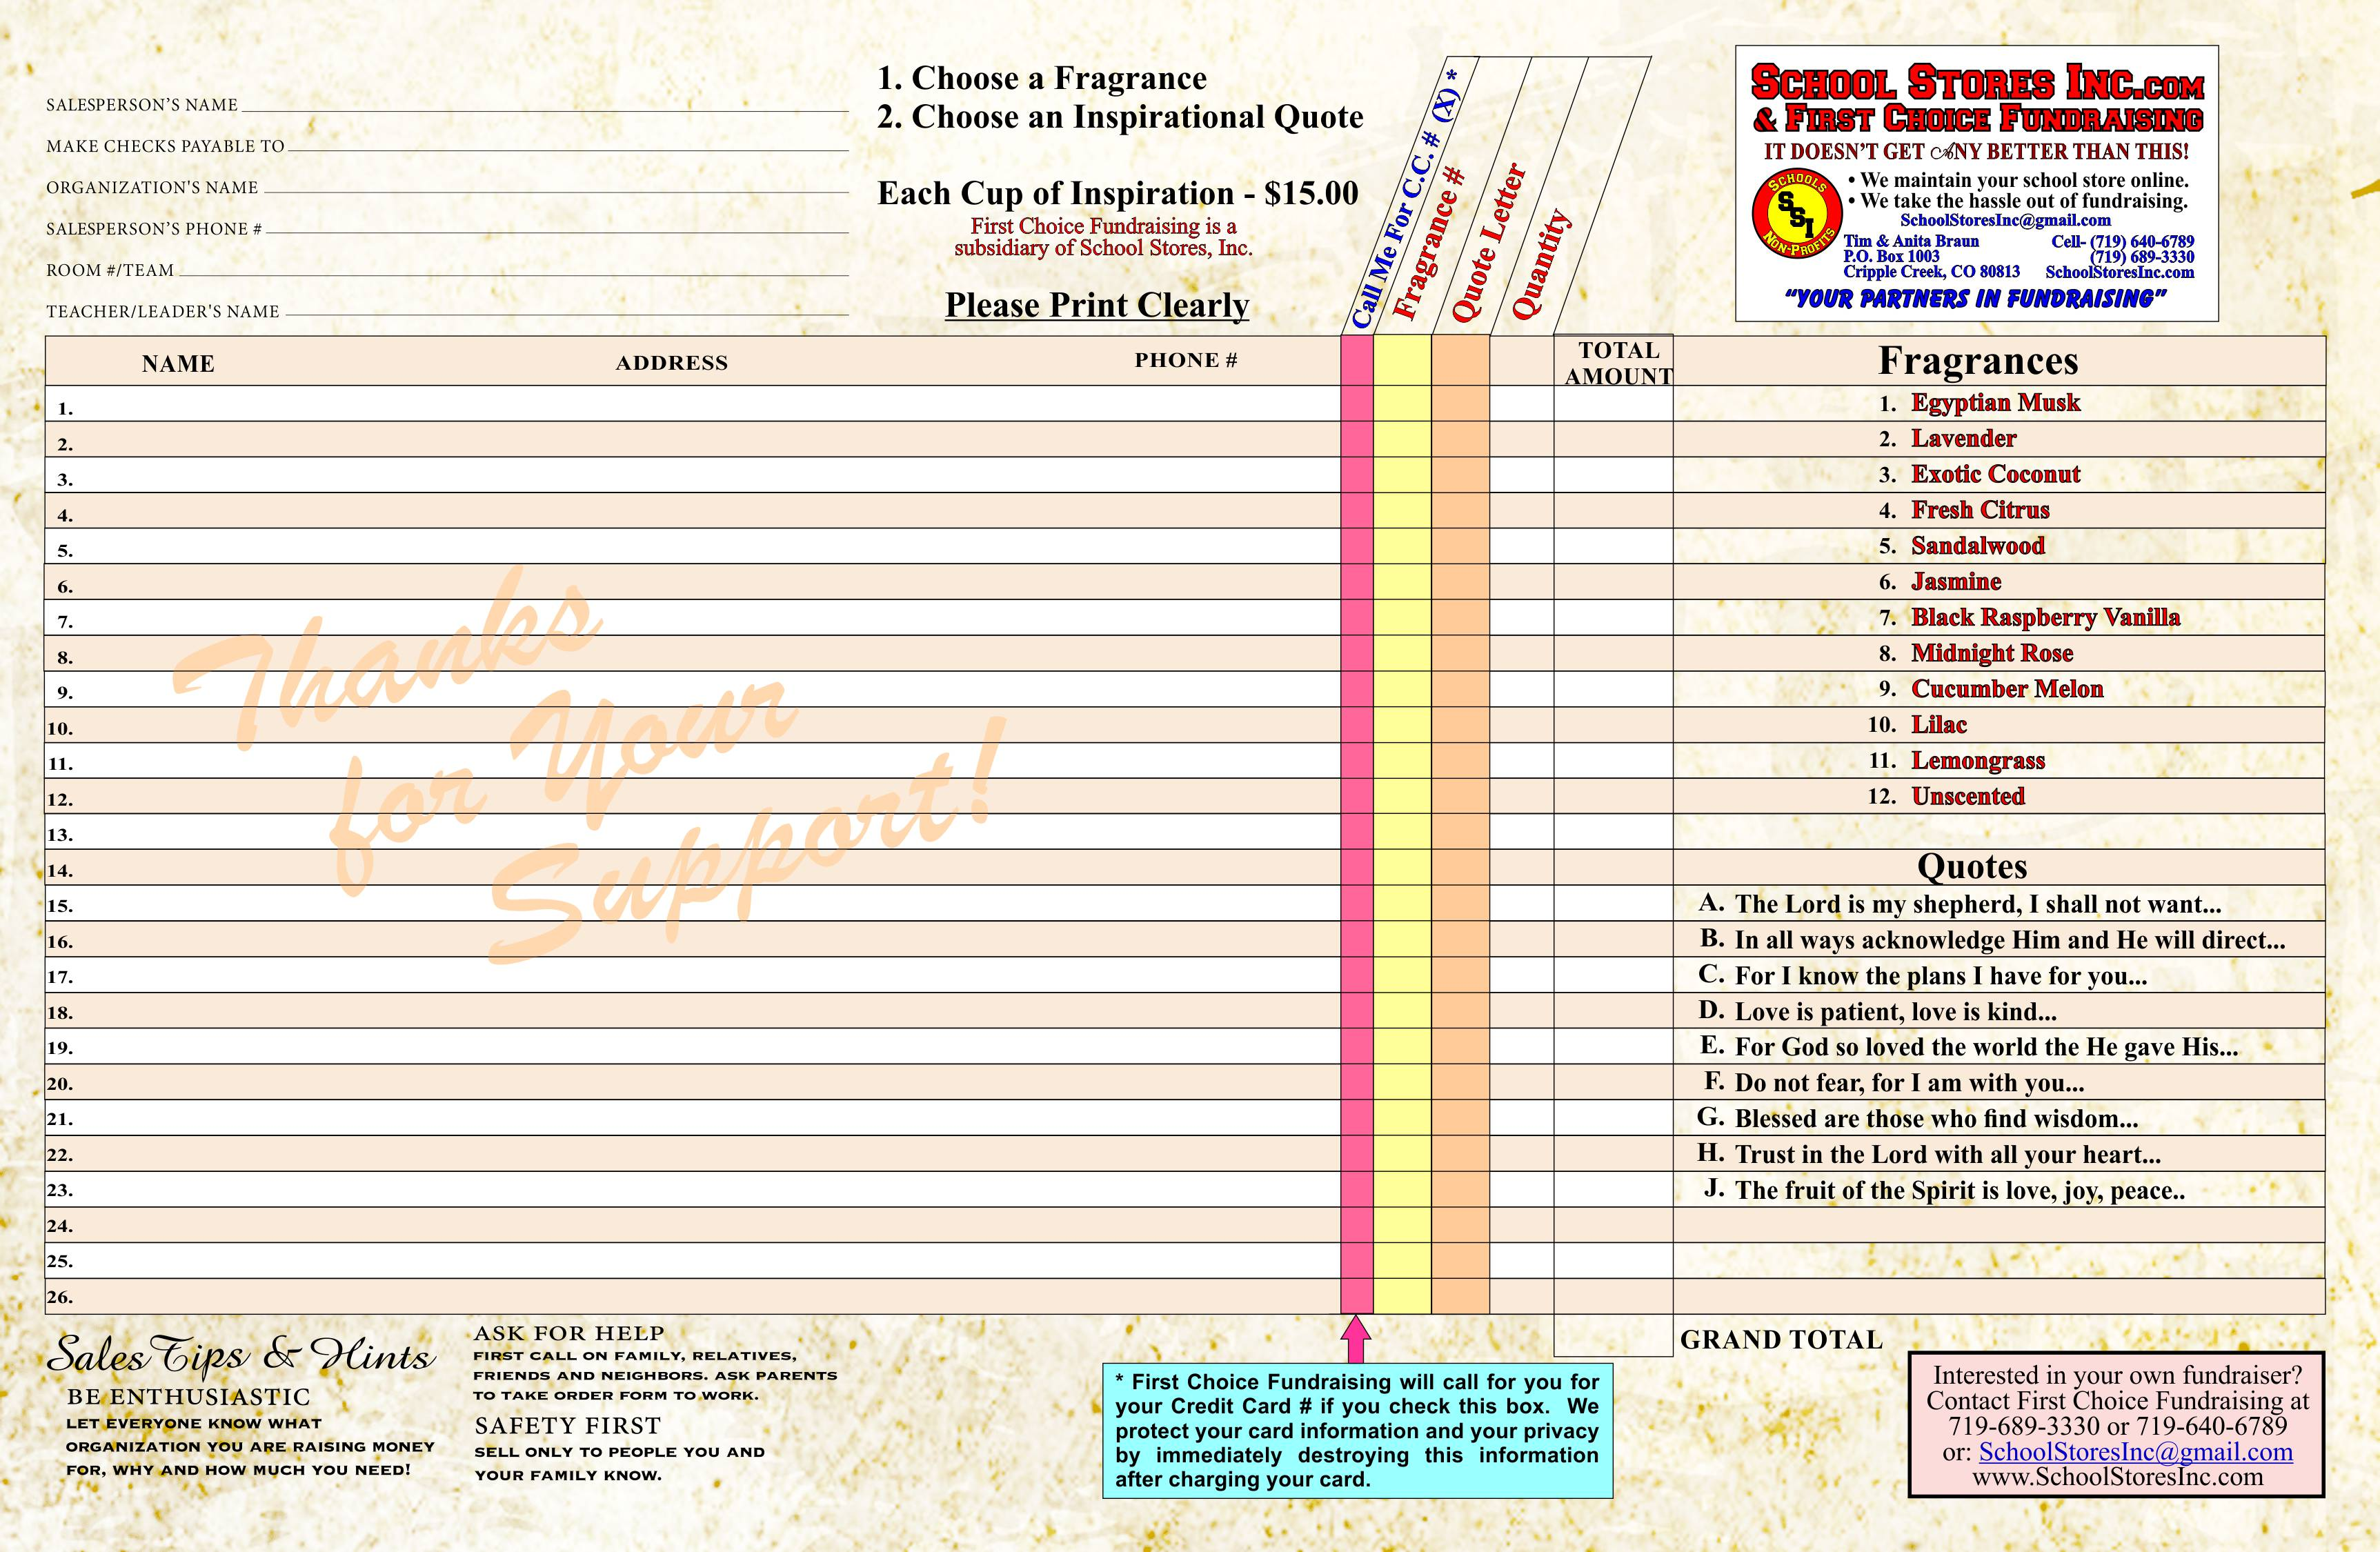 cup-of-inspiration-order-form-11x17-back.jpg